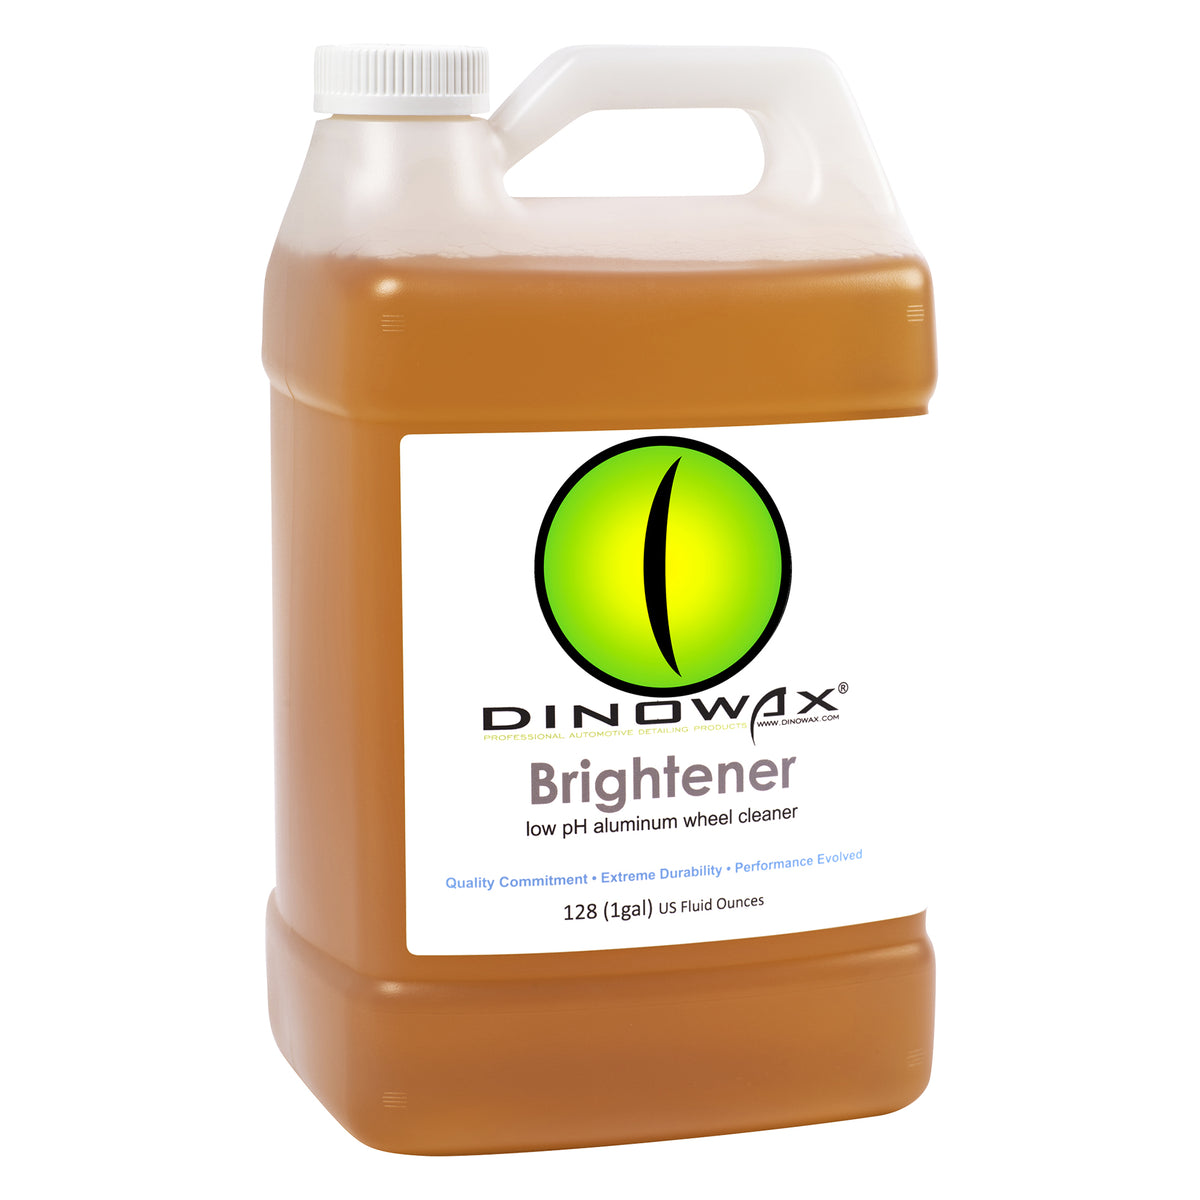 Dinowax Brightener for cars